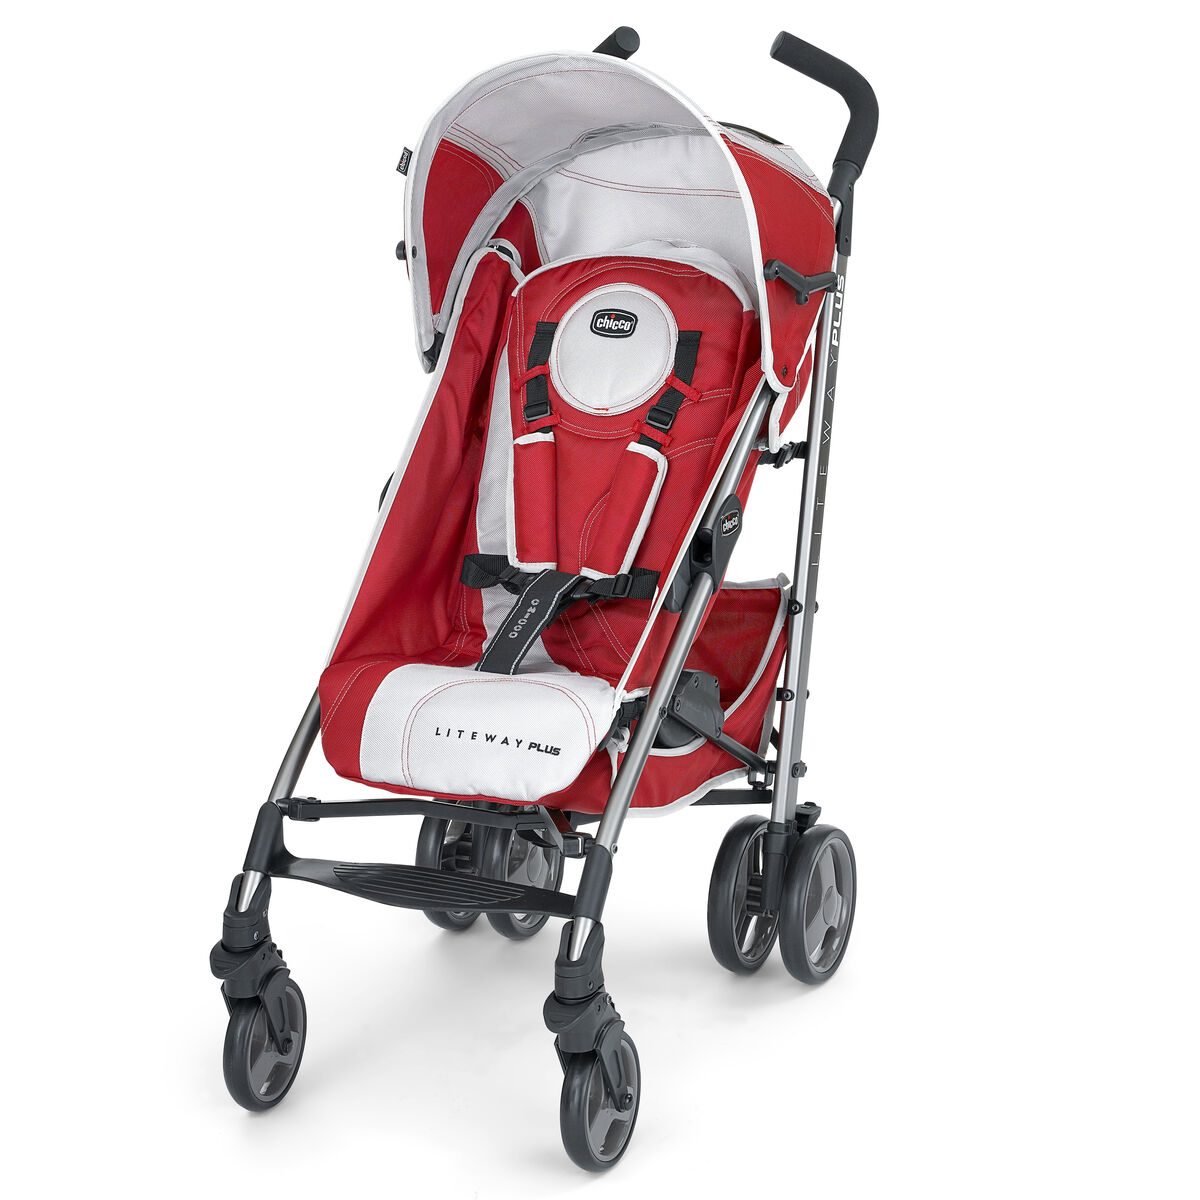 Chicco Liteway Plus Travel System In Red